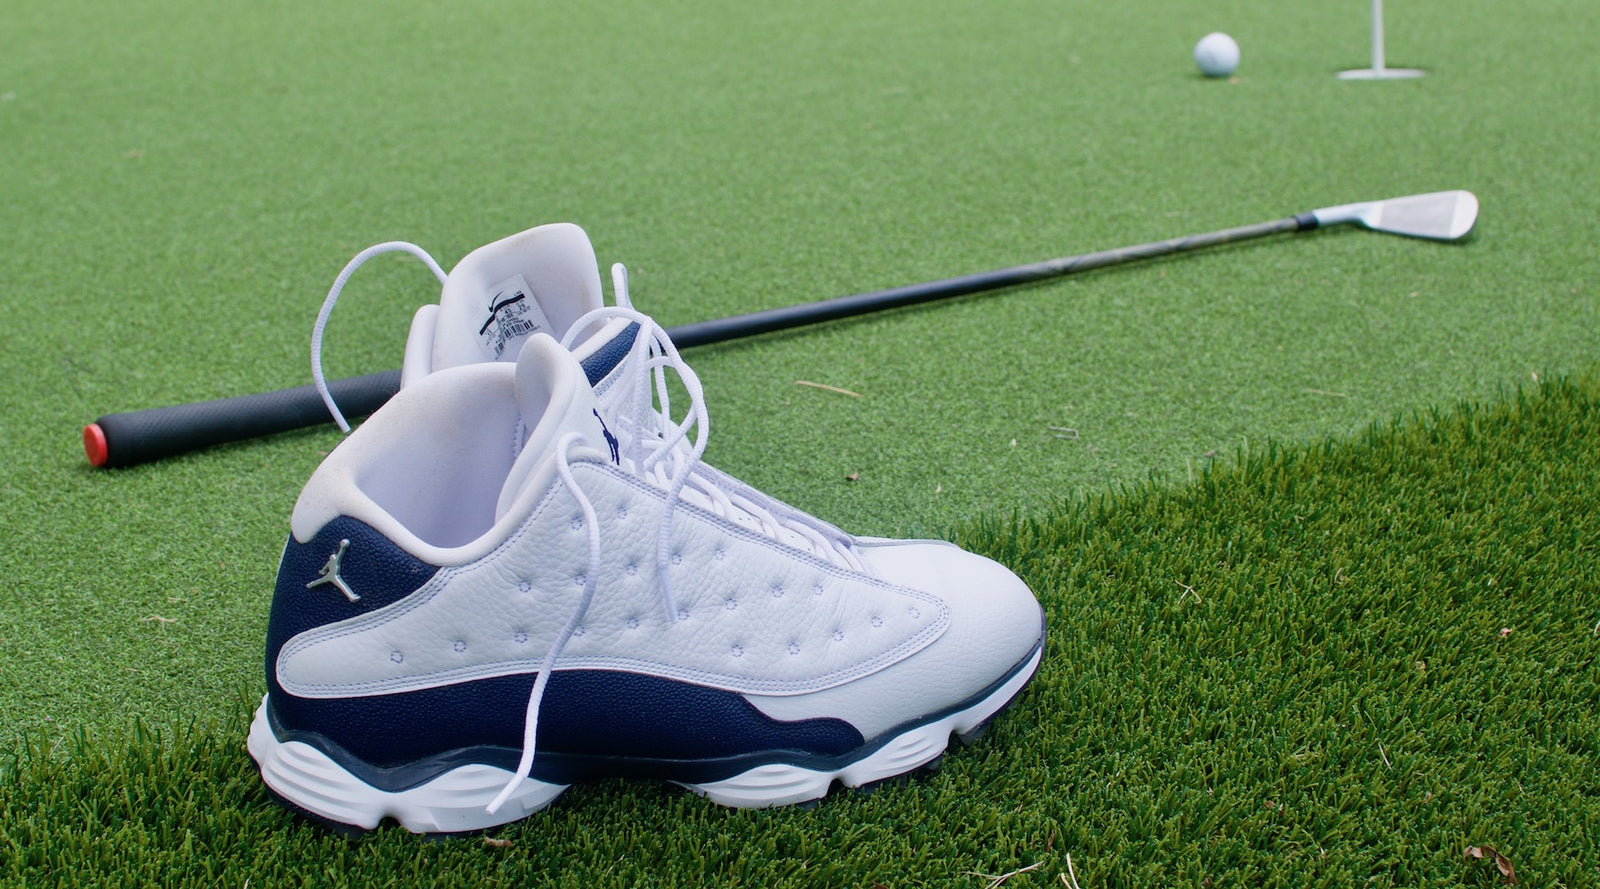 The Grip Life Golf Blog Reviews the Air Jordan XIII Nike Golf Shoes ... c4943b7ab